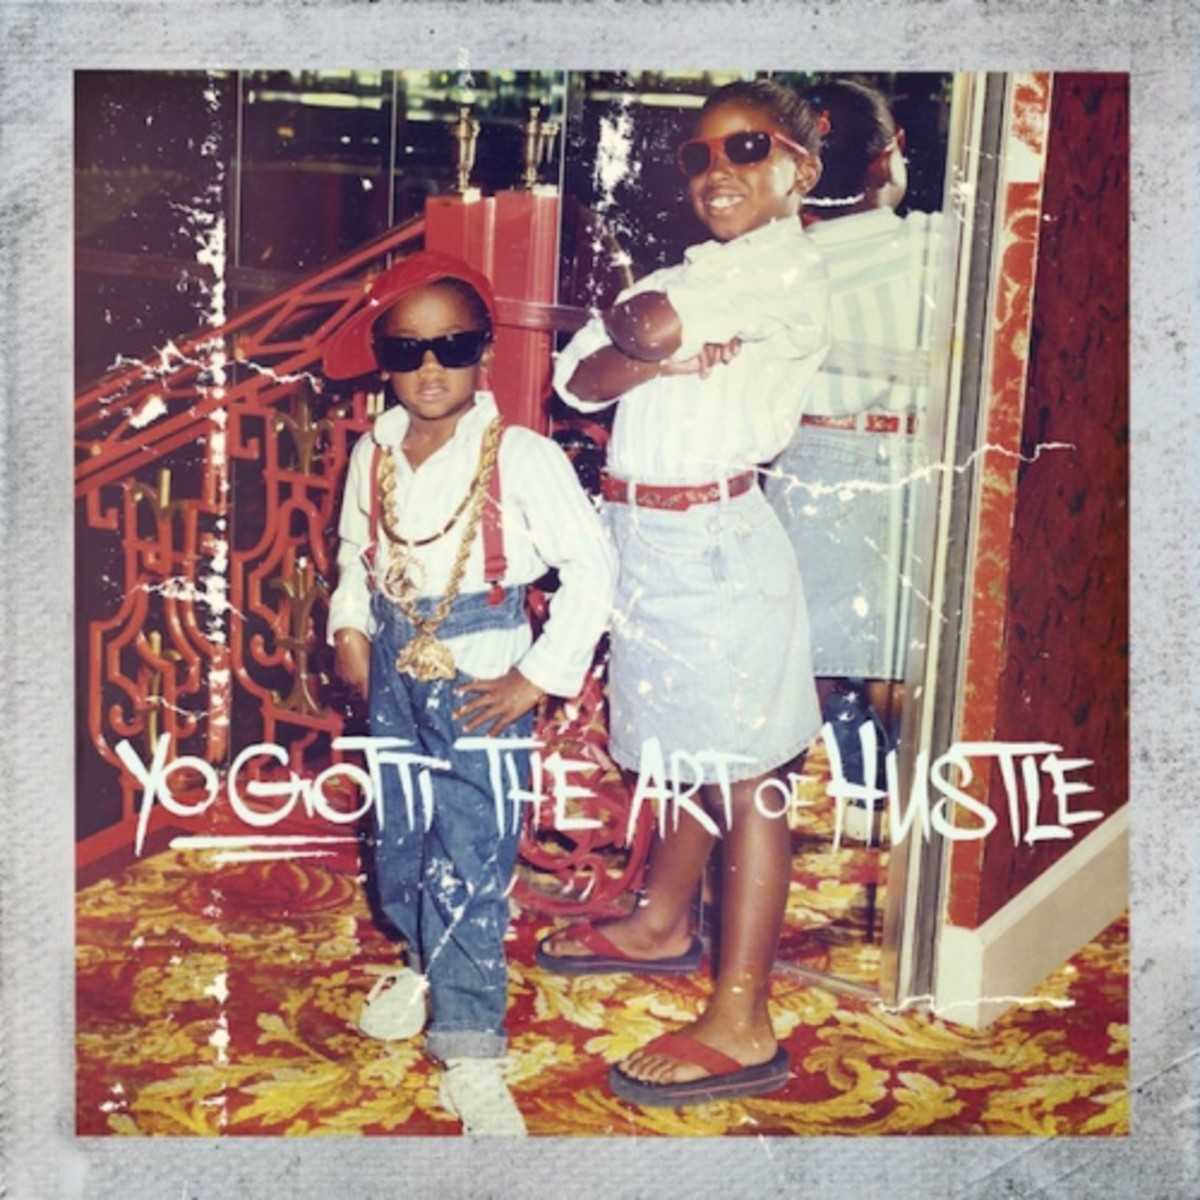 yo-gotti-the-art-of-hustle.jpg